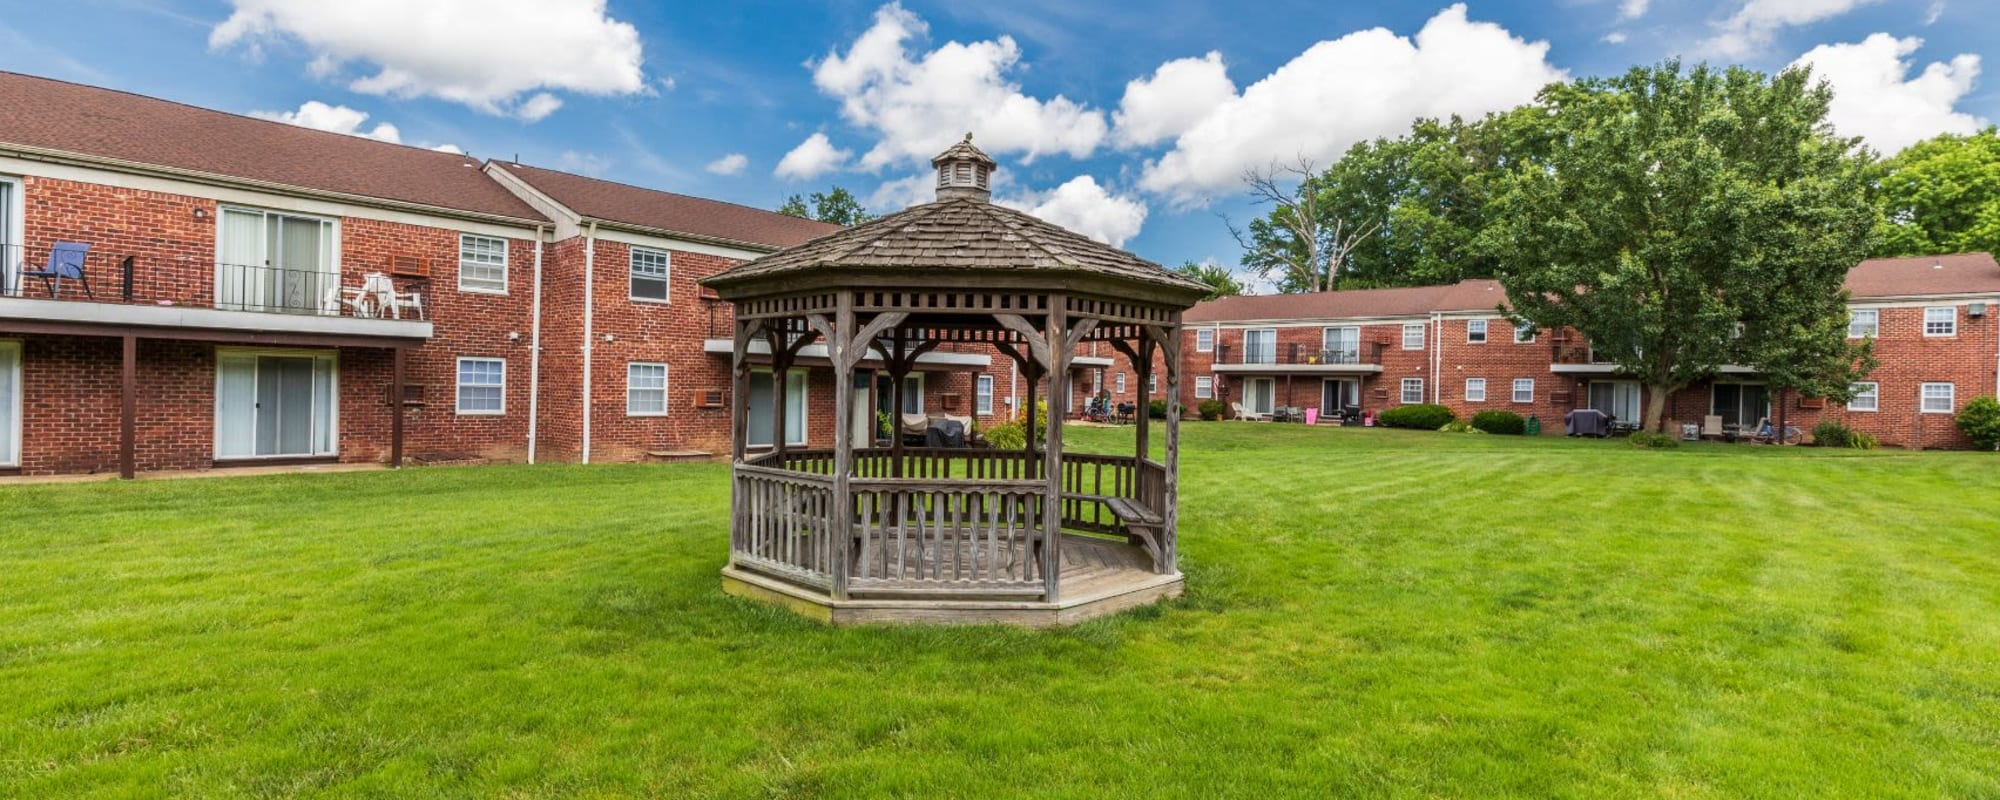 Schedule a tour to see Balmoral Arms in Matawan, New Jersey